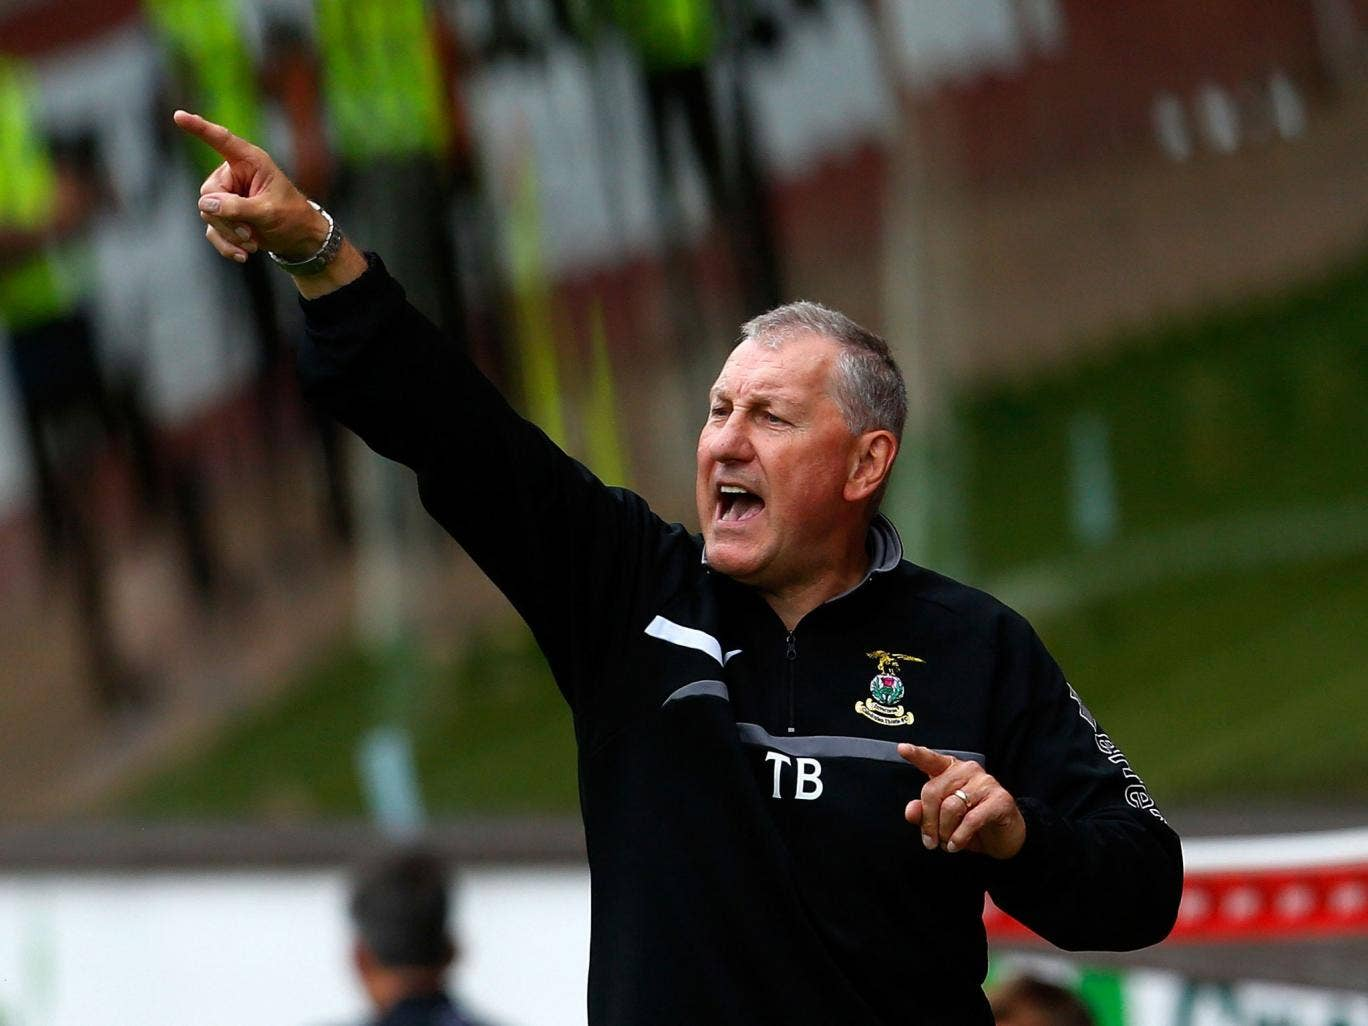 Terry Butcher's Inverness Caledonian Thistle are the early-season pacesetters in the Scottish Premier League